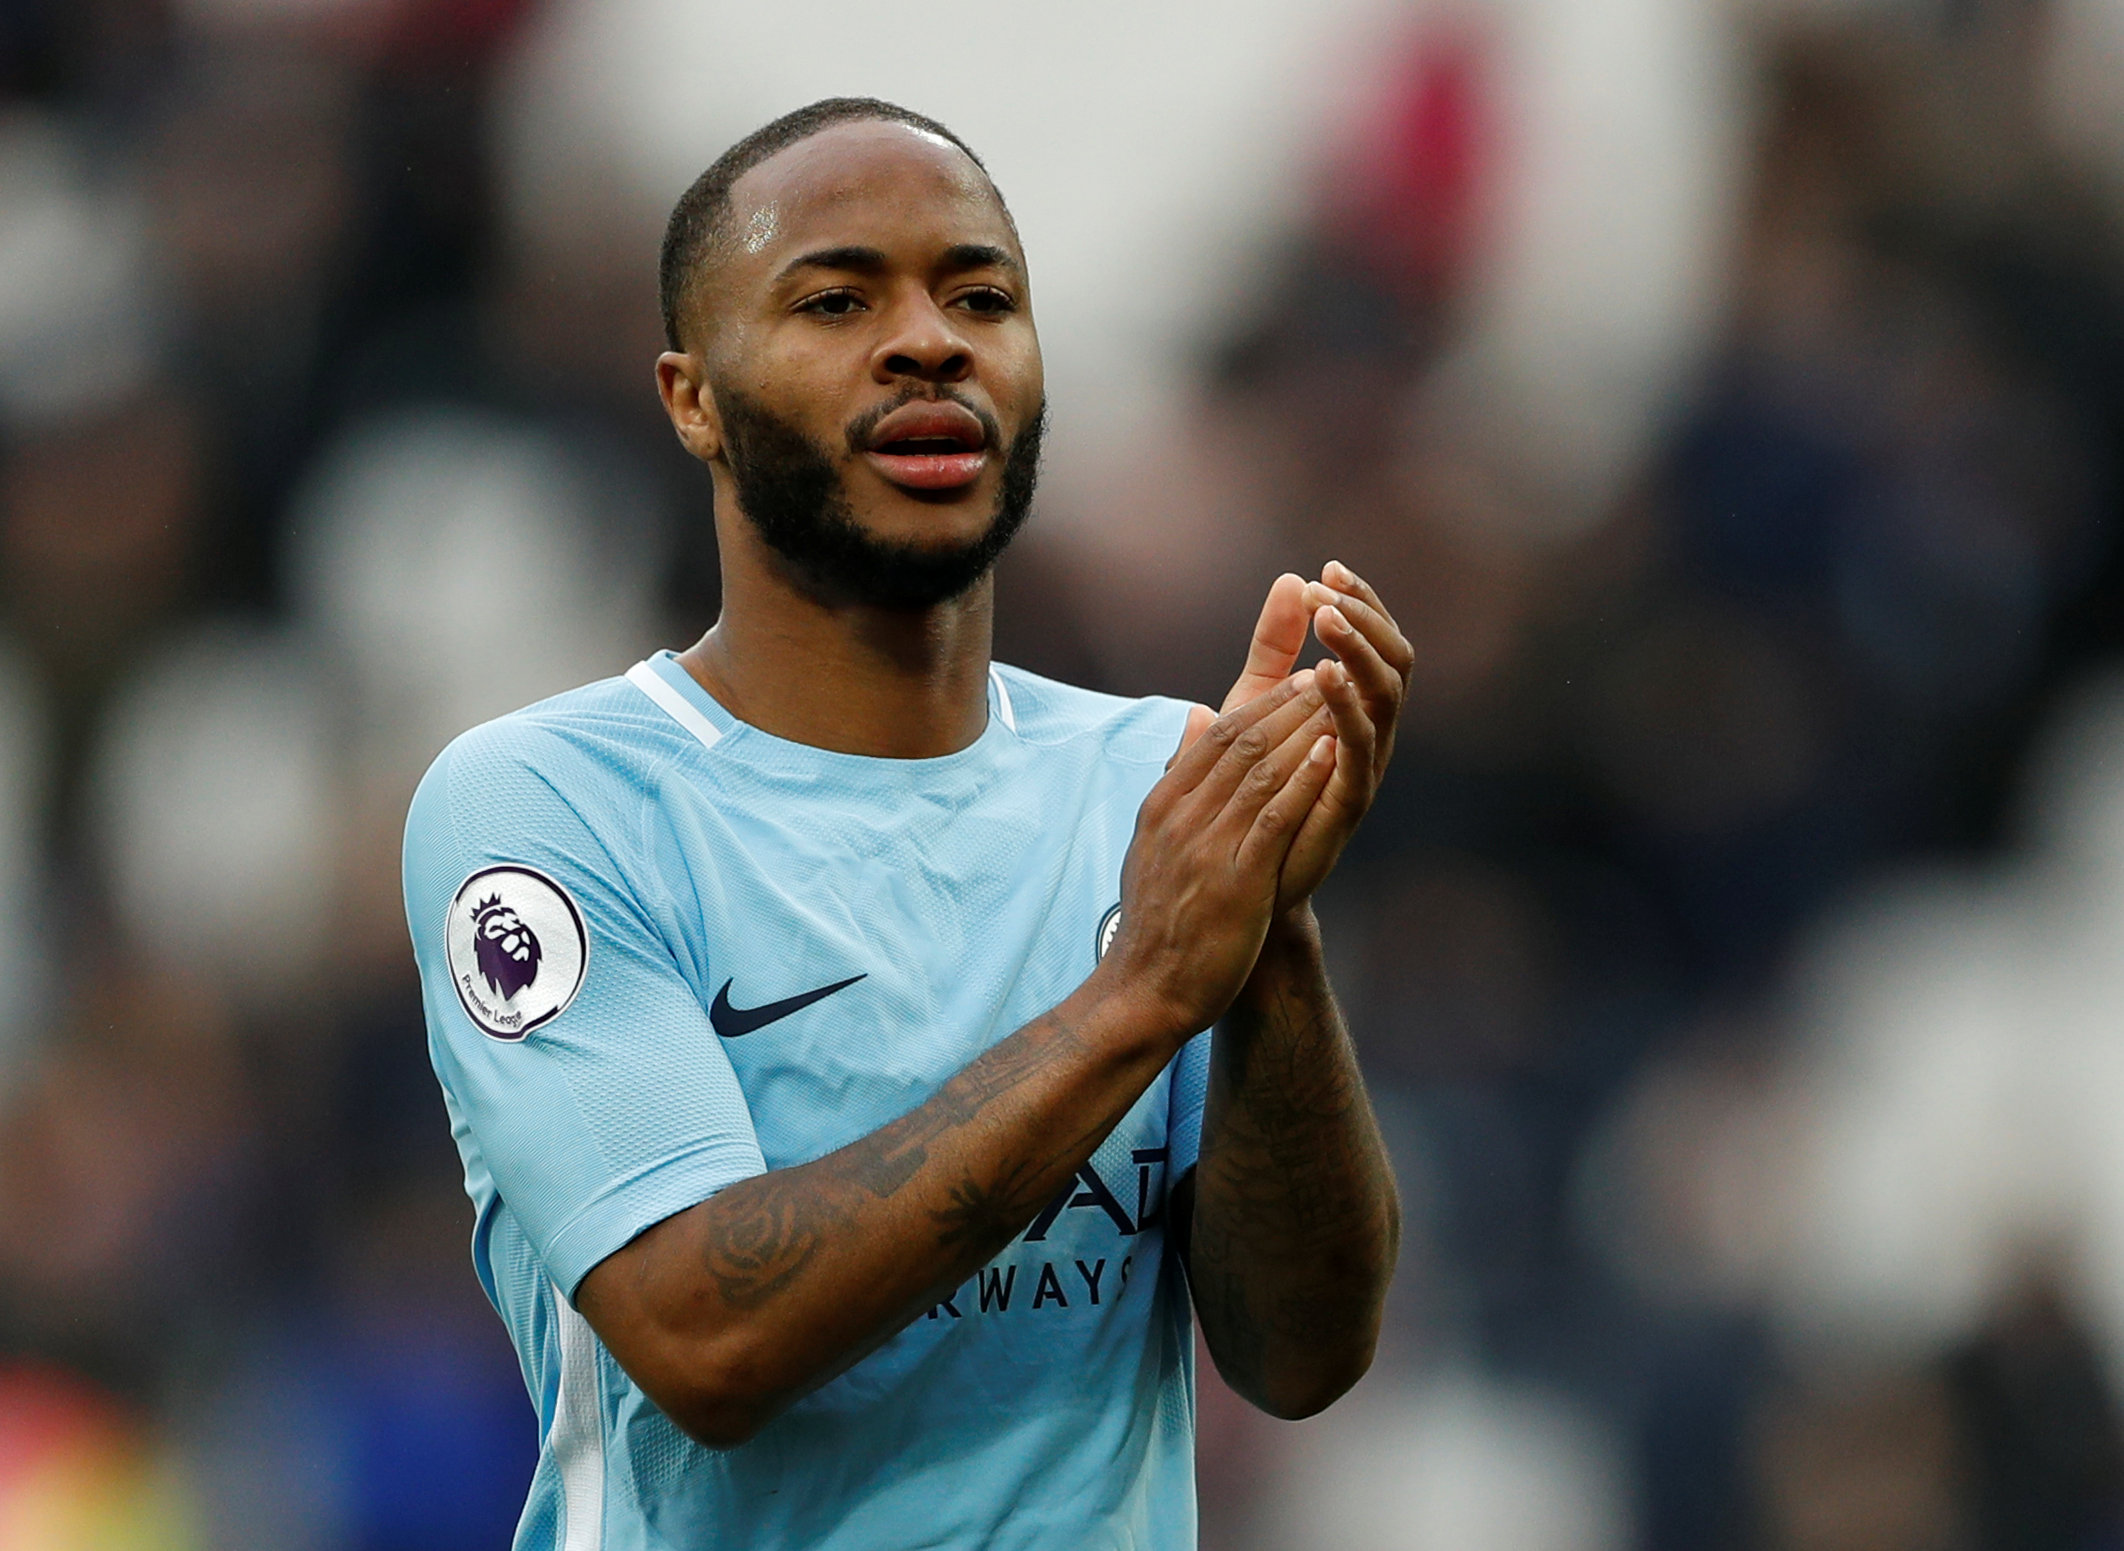 → Raheem Sterling was second only to Mohamed Salah for FPL points in 2017/18. What was his starting price?